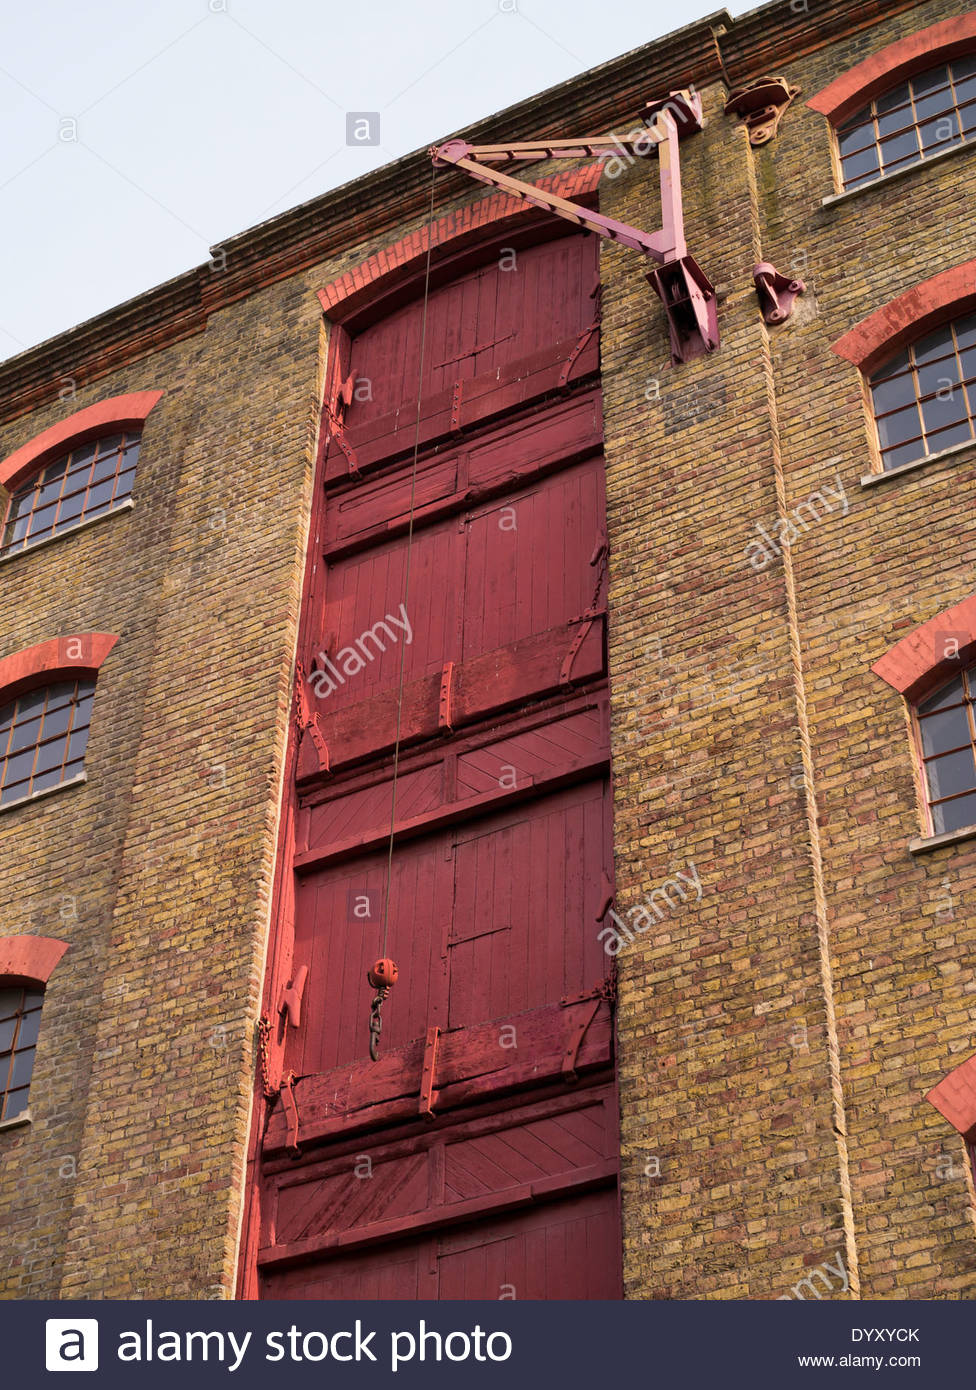 King Henry's Wharves within the Wapping Wall conservation area: East London. - Stock Image